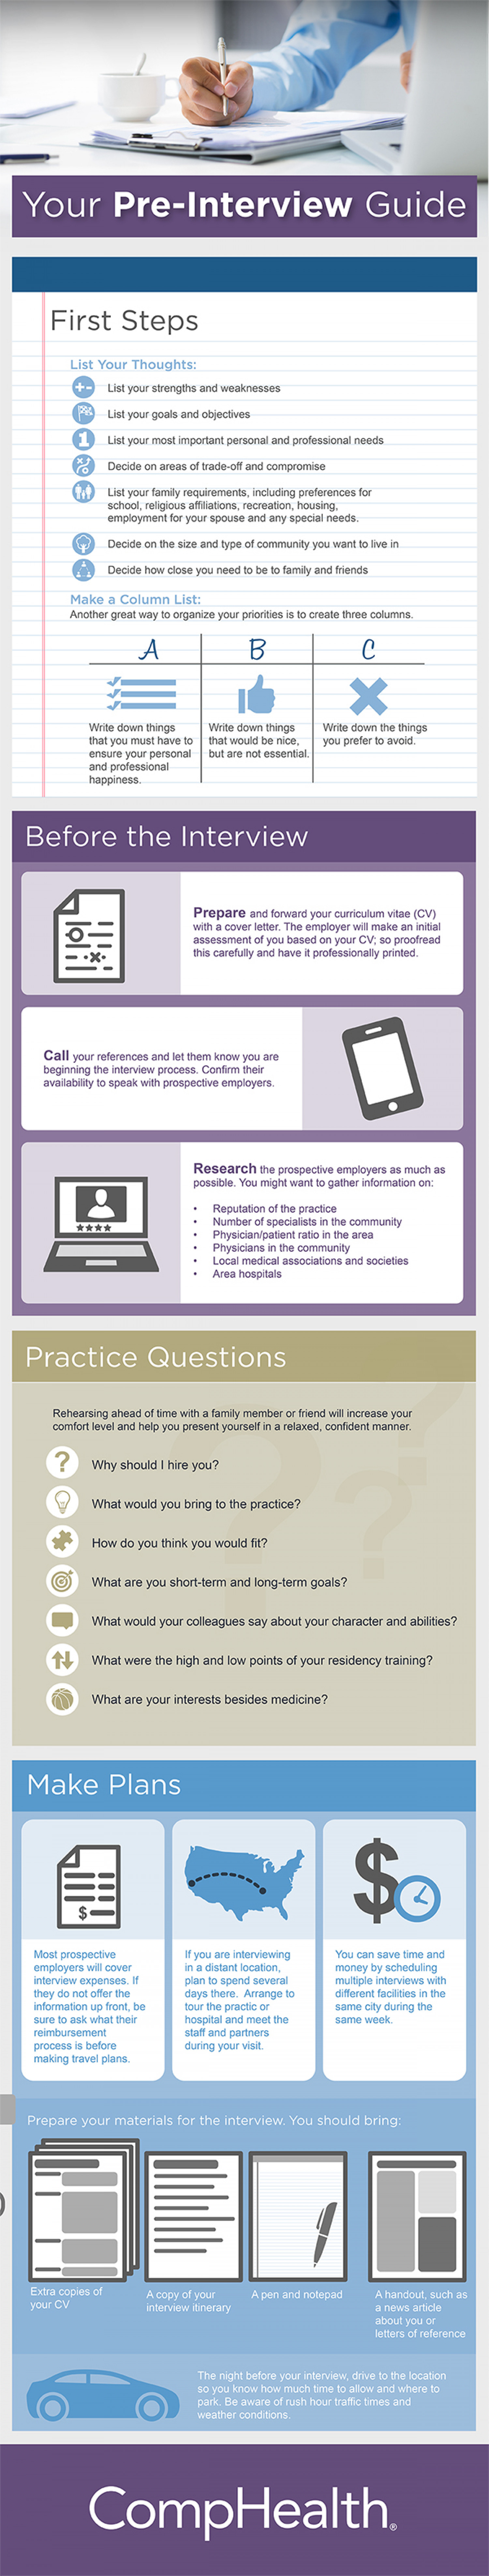 Your Pre-Interview Guide Infographic